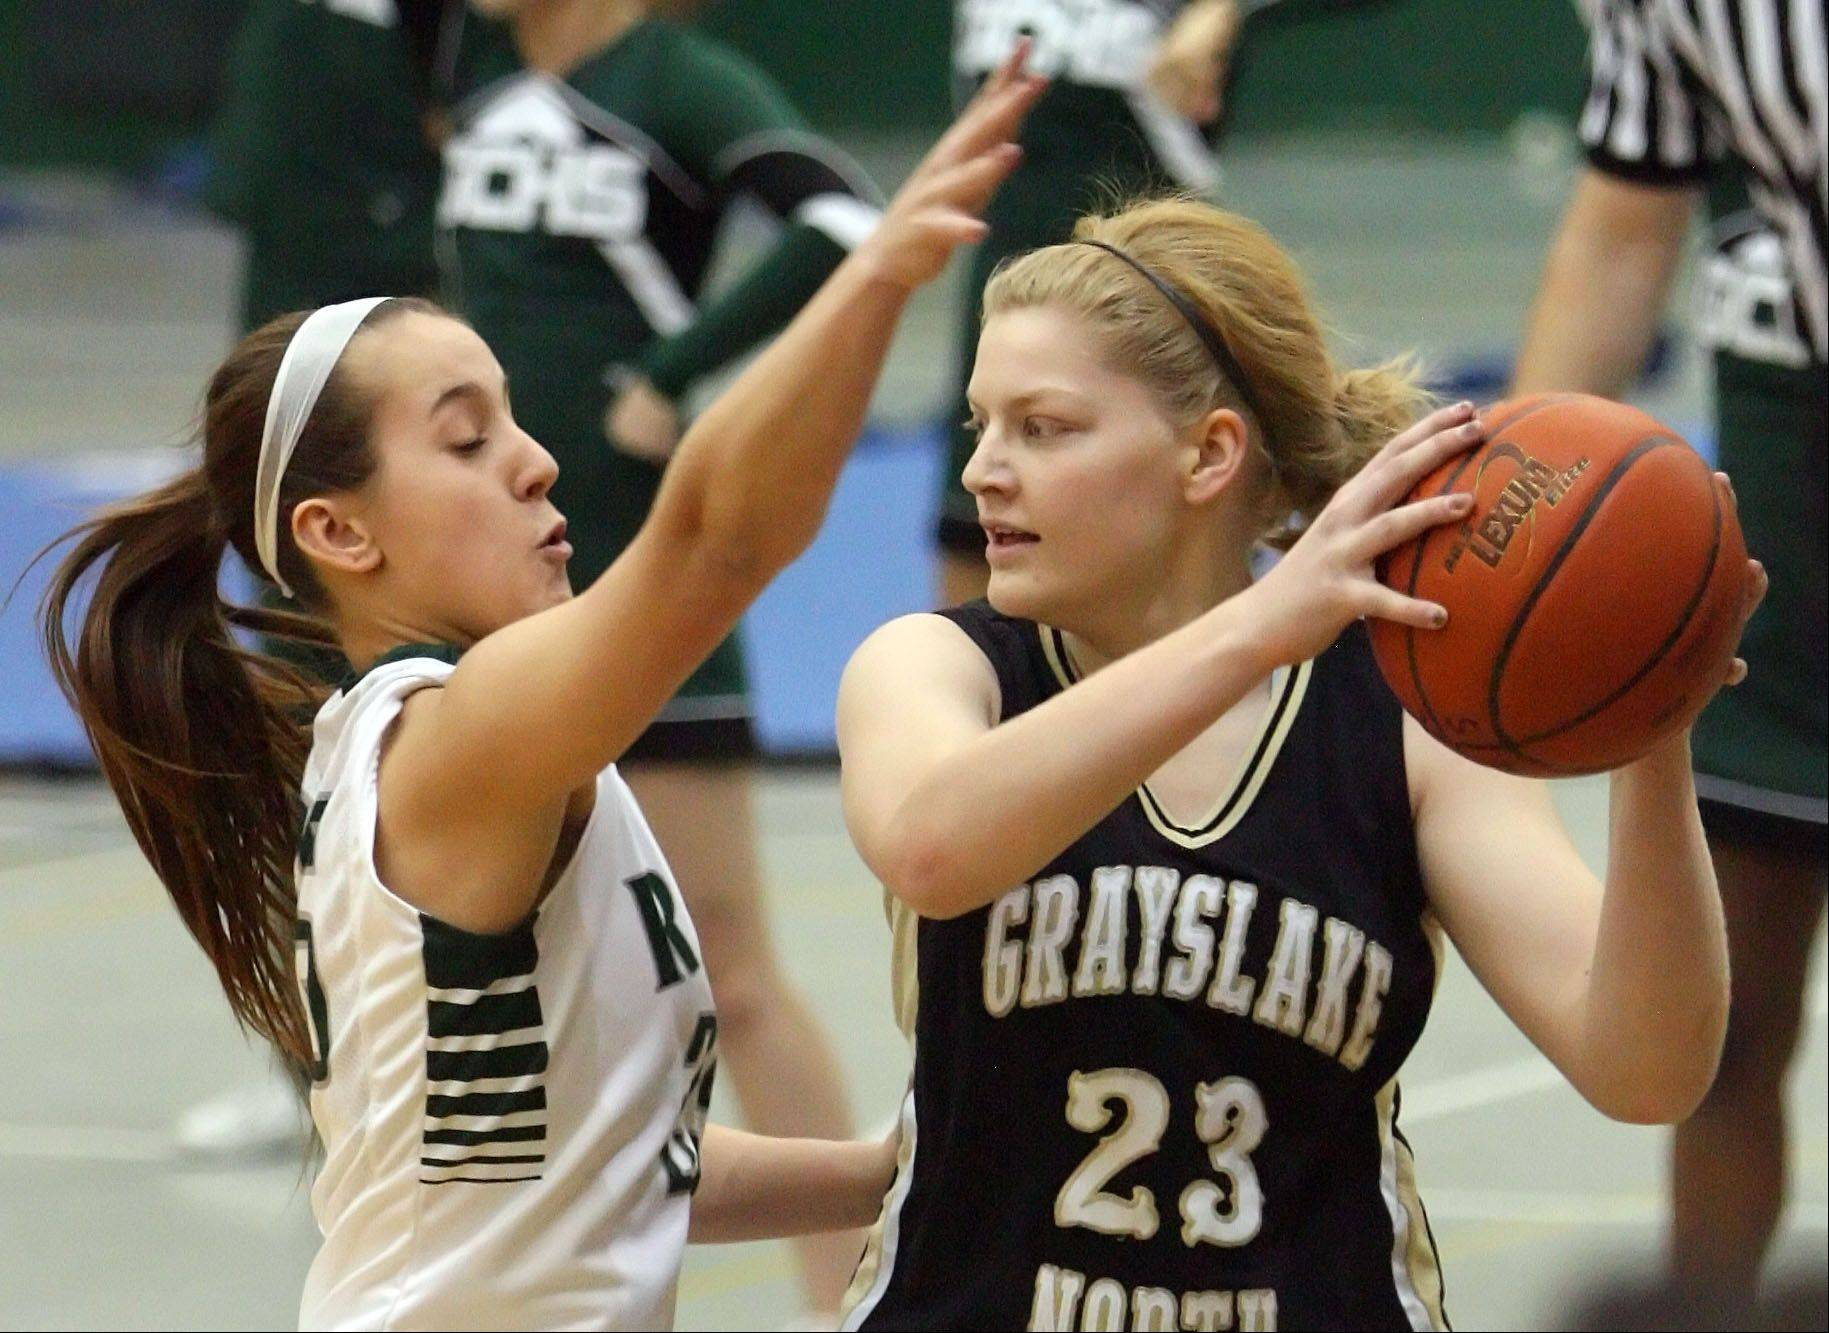 Grayslake Central's Taylor Peterson, left, defends Grayslake North's Joanna Guhl during Tuesday's game at Grayslake Central.